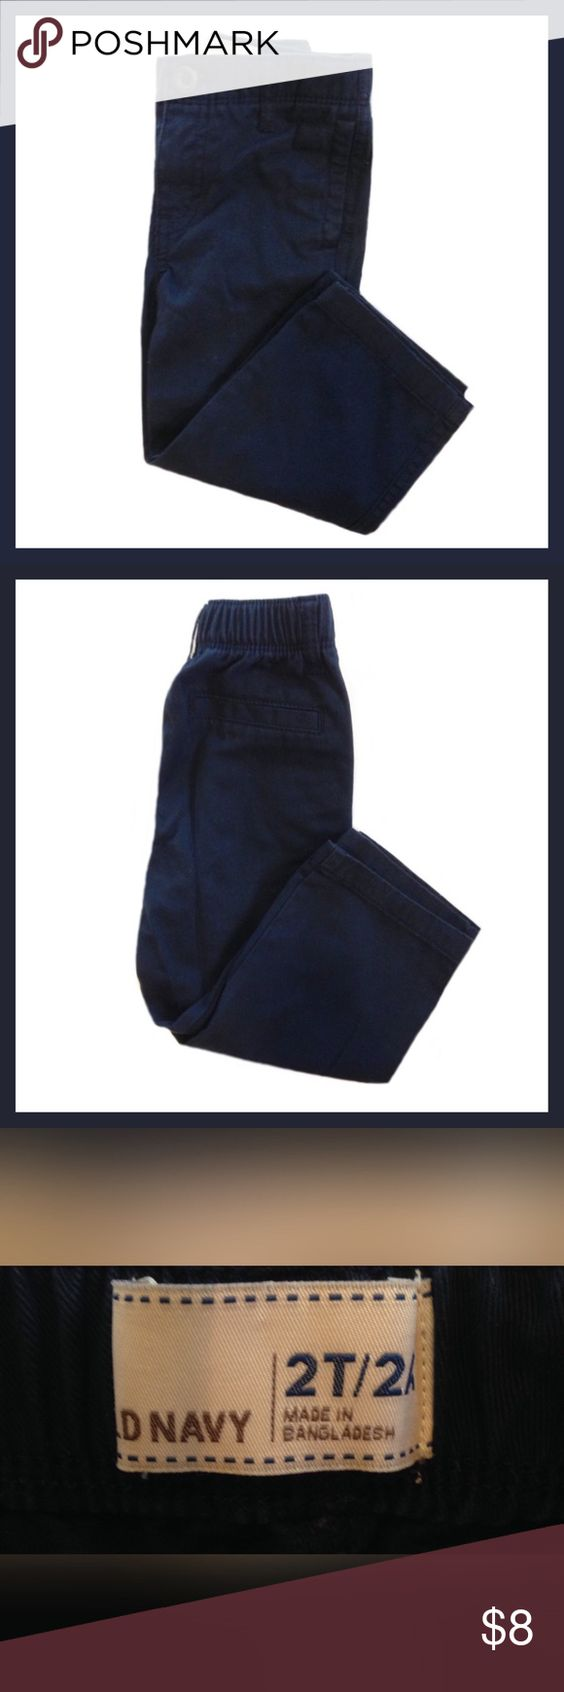 OLD NAVY Toddler Boy Twill Khakis Gently used OLD NAVY toddler boy twill khakis; Color is ink blue; Size 2T.  ******BUNDLE AND SAVE ****** Old Navy Bottoms Casual